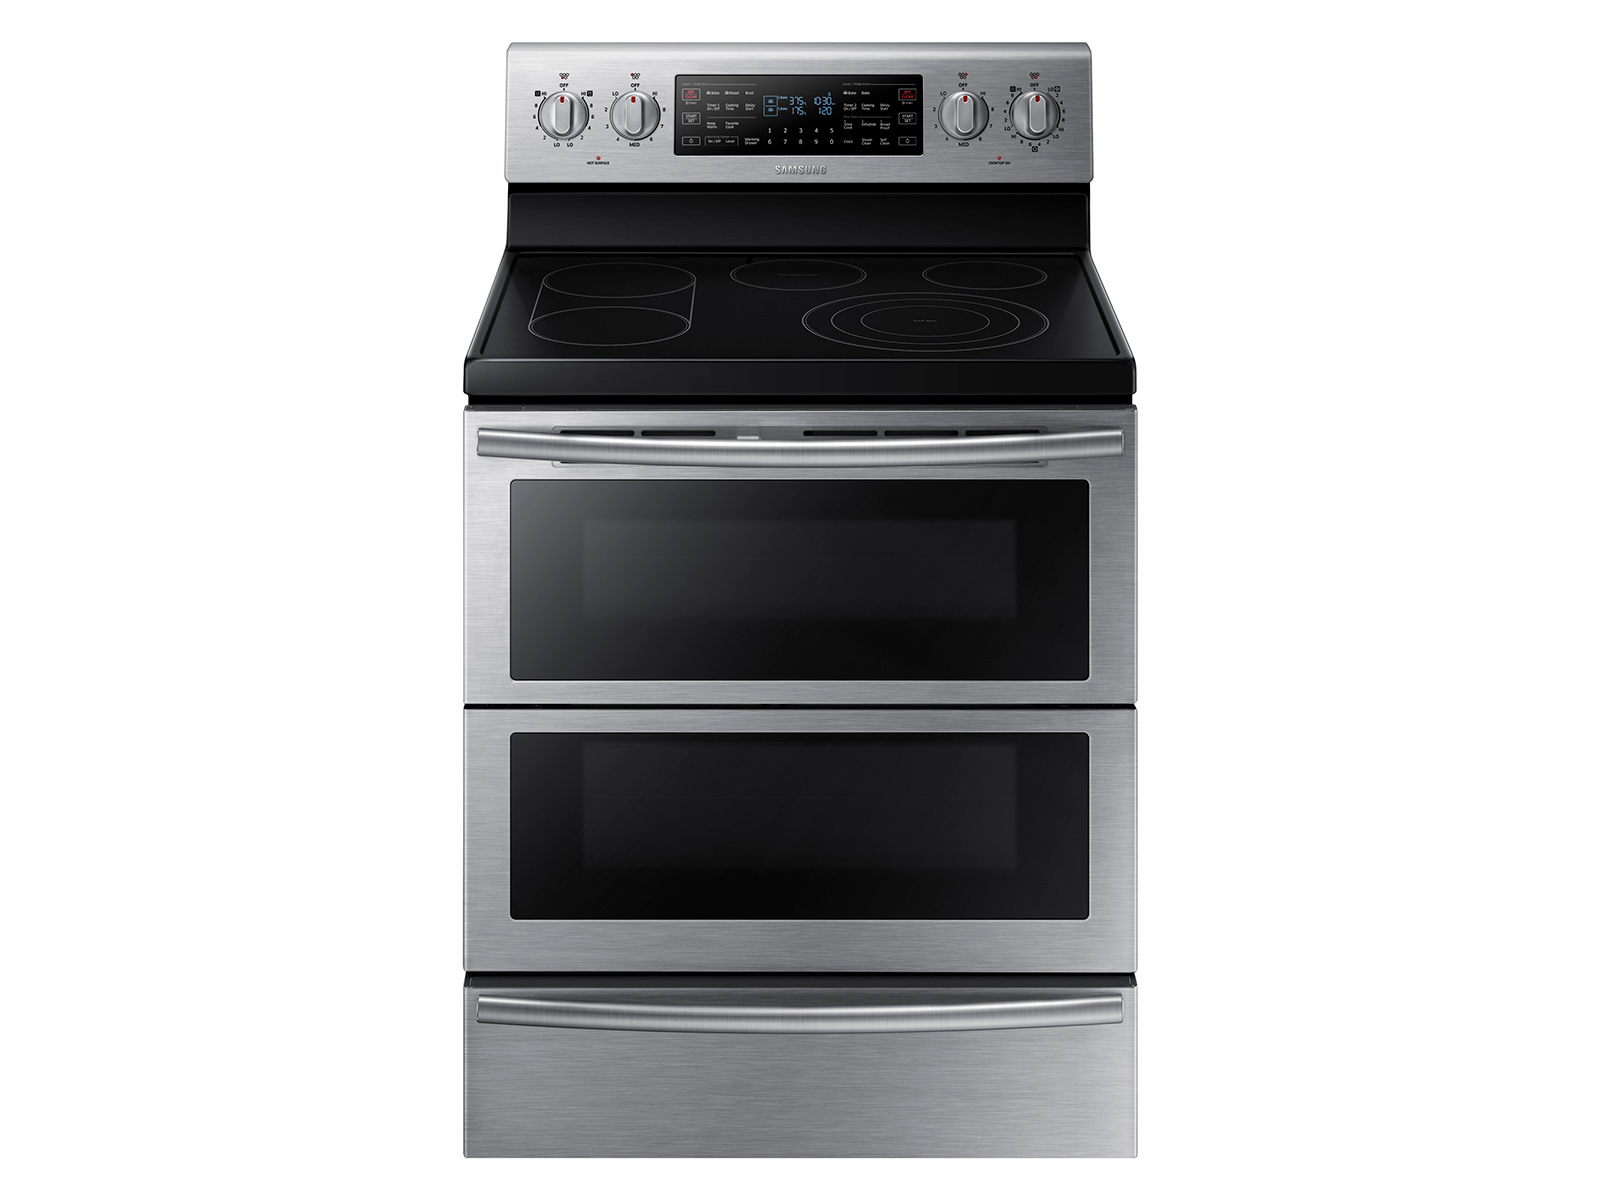 59 Cu Ft Electric Flex Duo Range With Soft Close And Dual Door Wiring Zones Kitchen Ranges Ne59j7850ws Aa Samsung Us